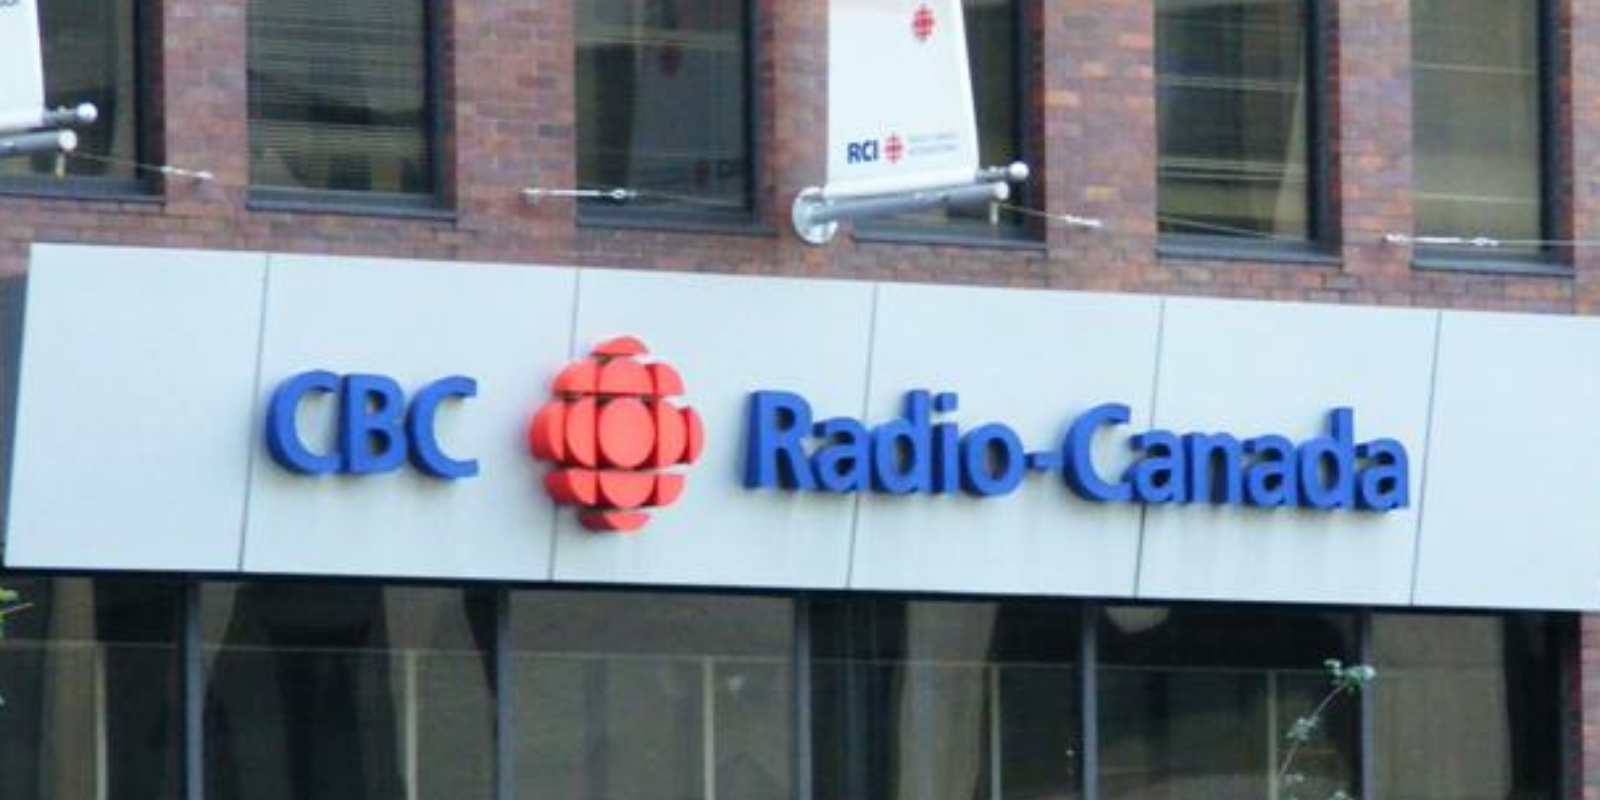 Only 28 percent of Canadians say CBC radio is 'important' to them